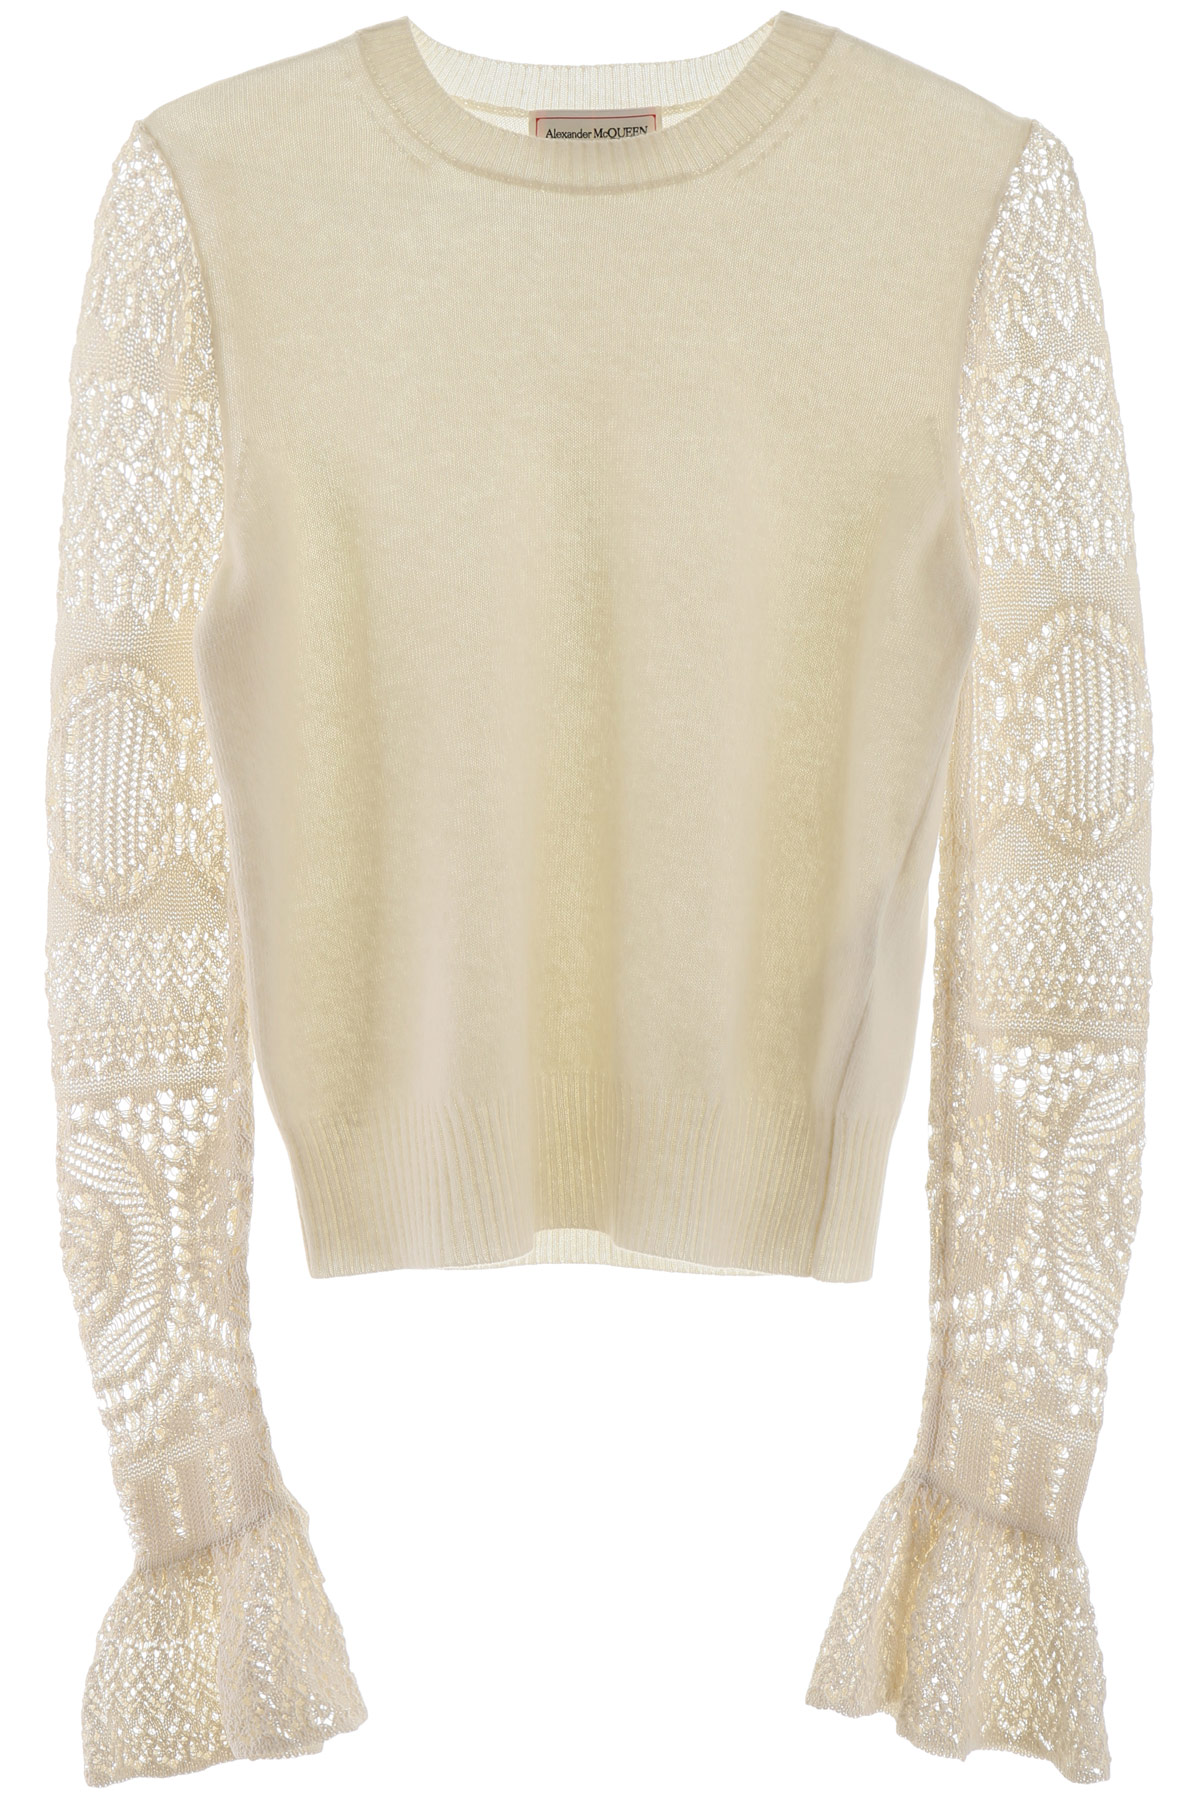 ALEXANDER MCQUEEN PULLOVER WITH CROCHET SLEEVES XS White Wool, Cotton